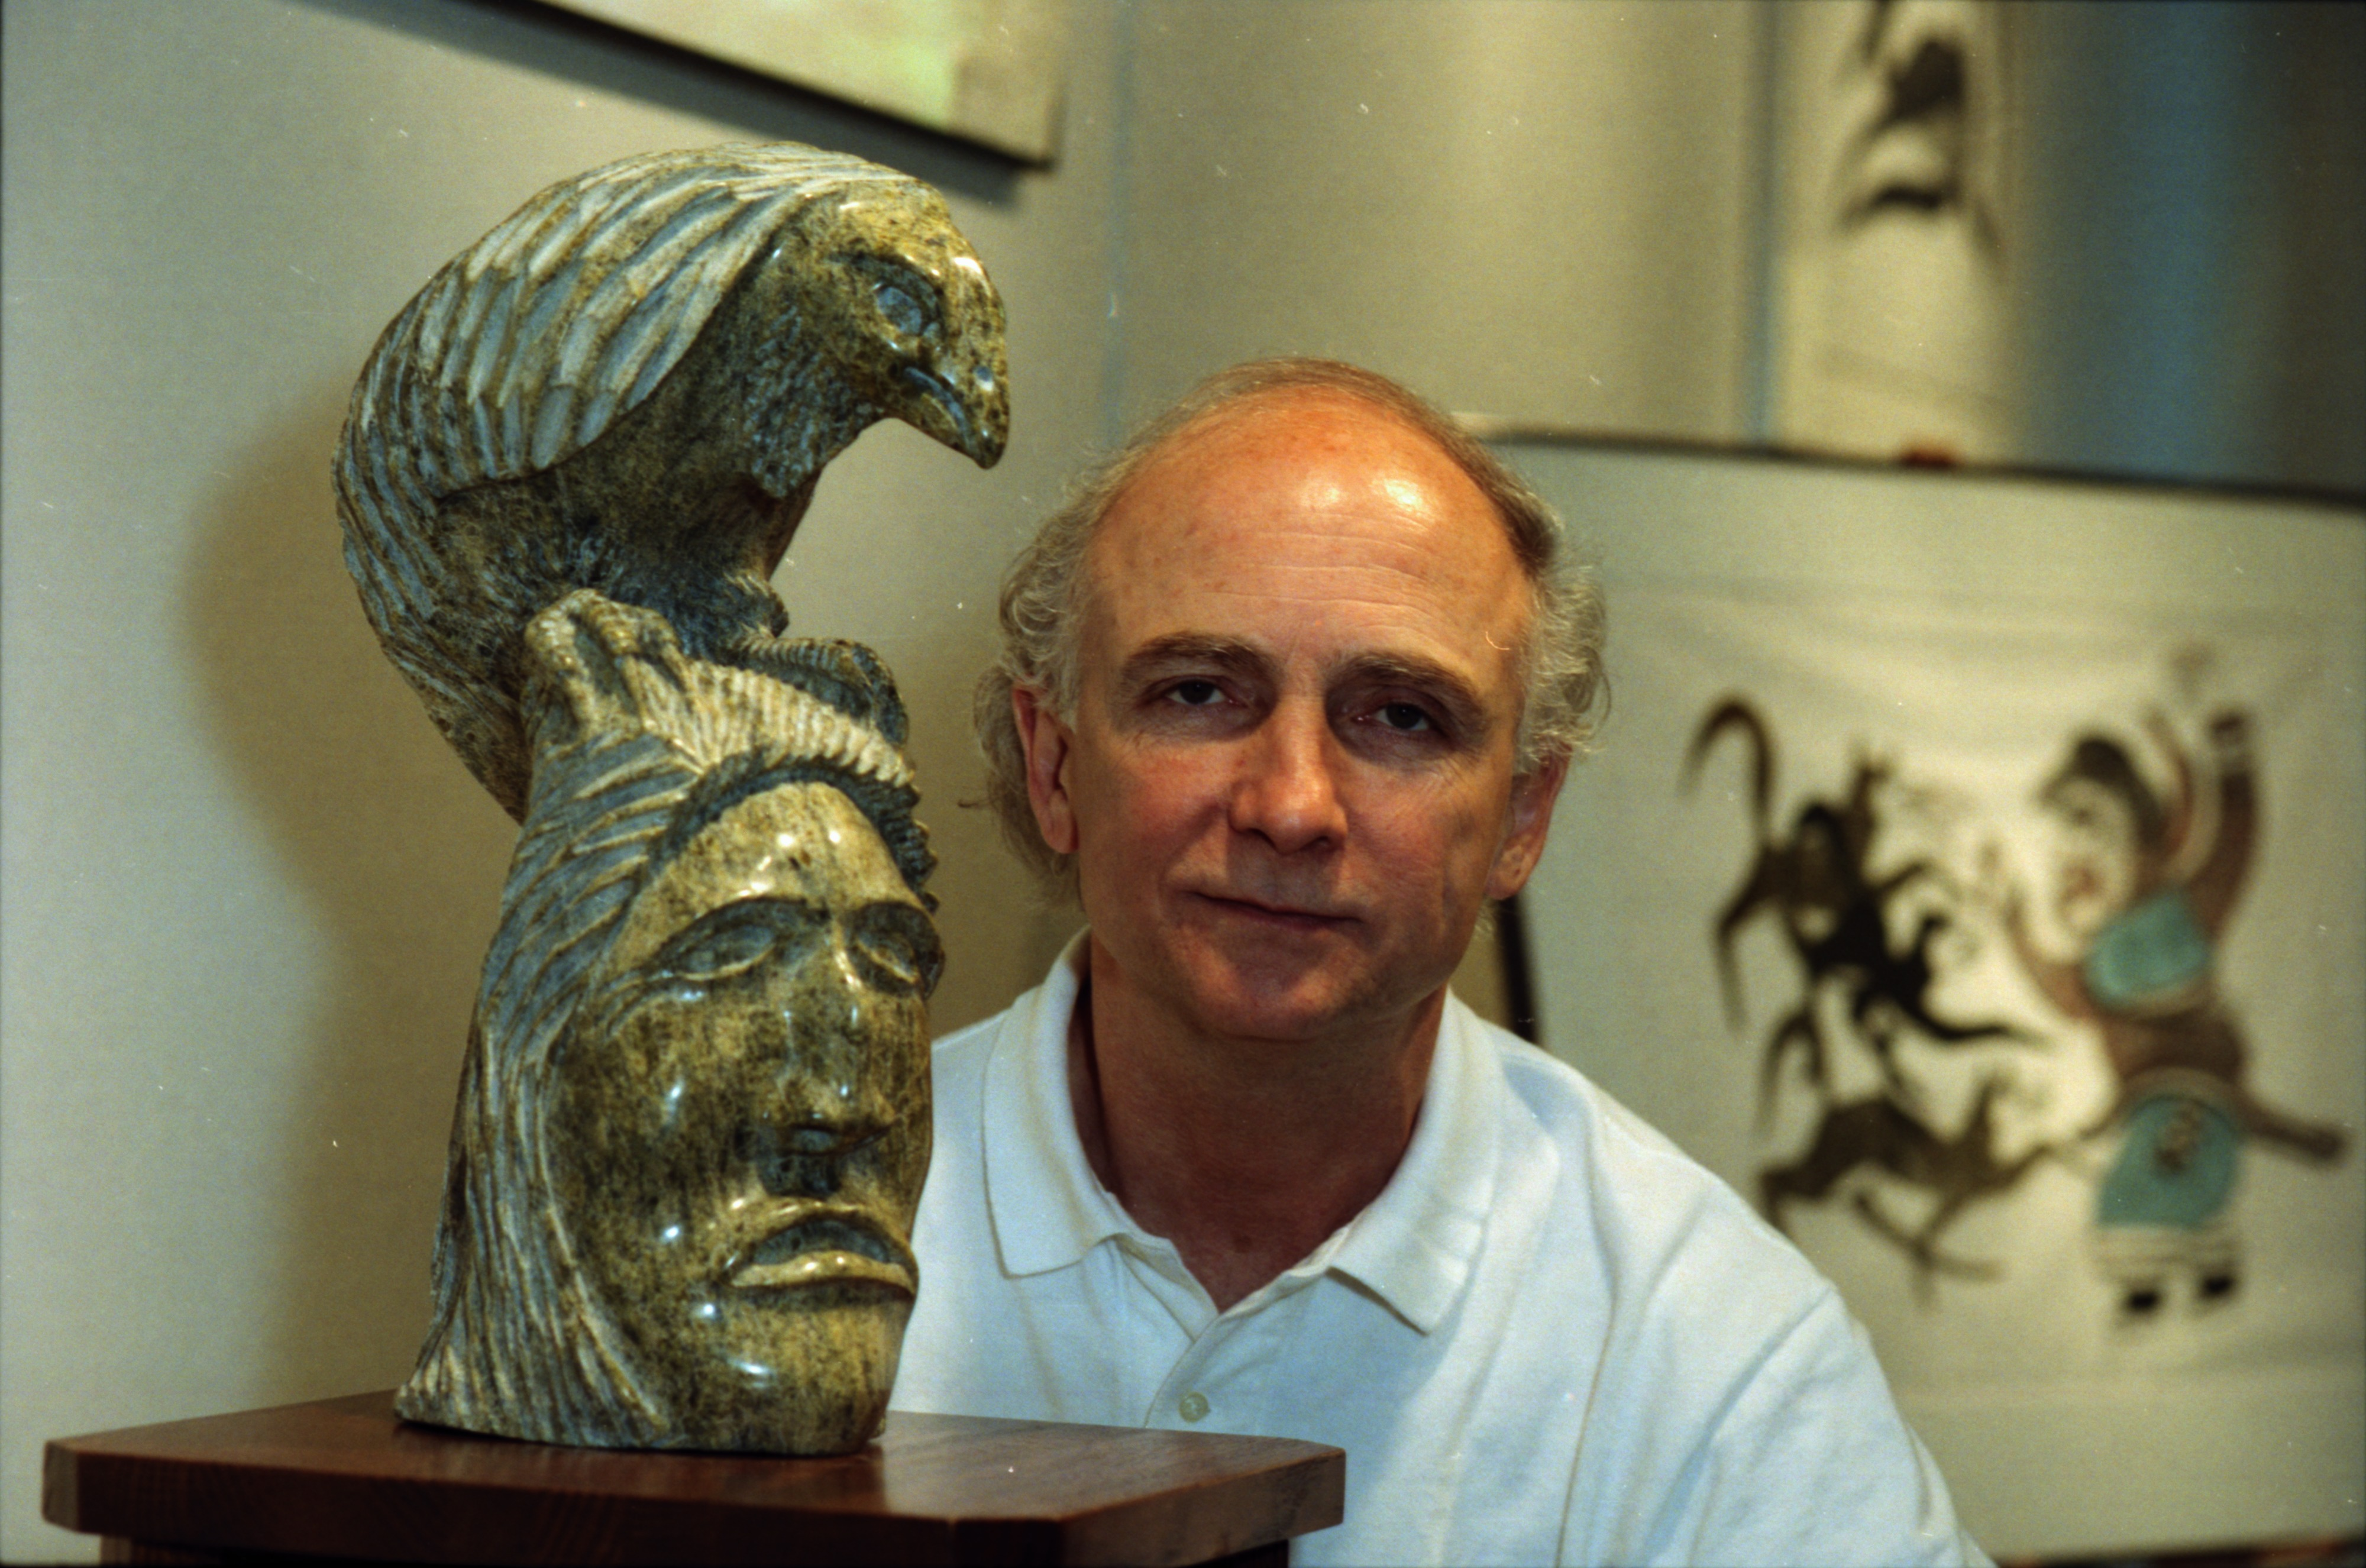 Jack Strickland Posing with Inuit Sculpture at his Gallery, July 1997 image